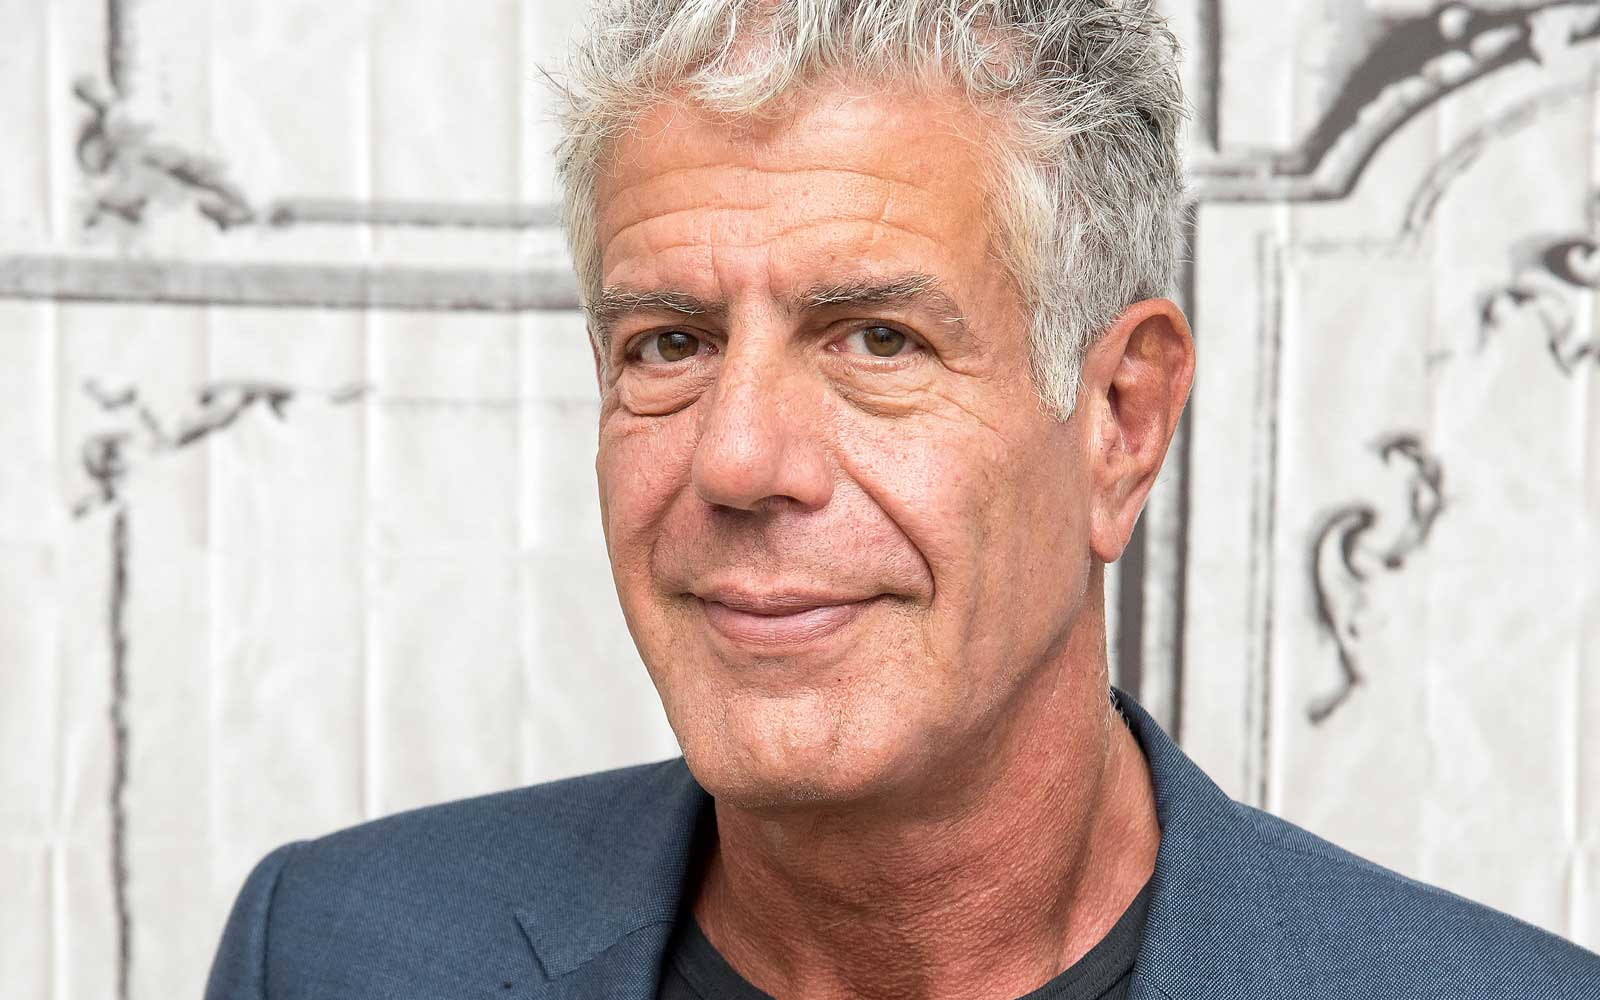 Anthony Bourdain Says This Airport Has the Best Food